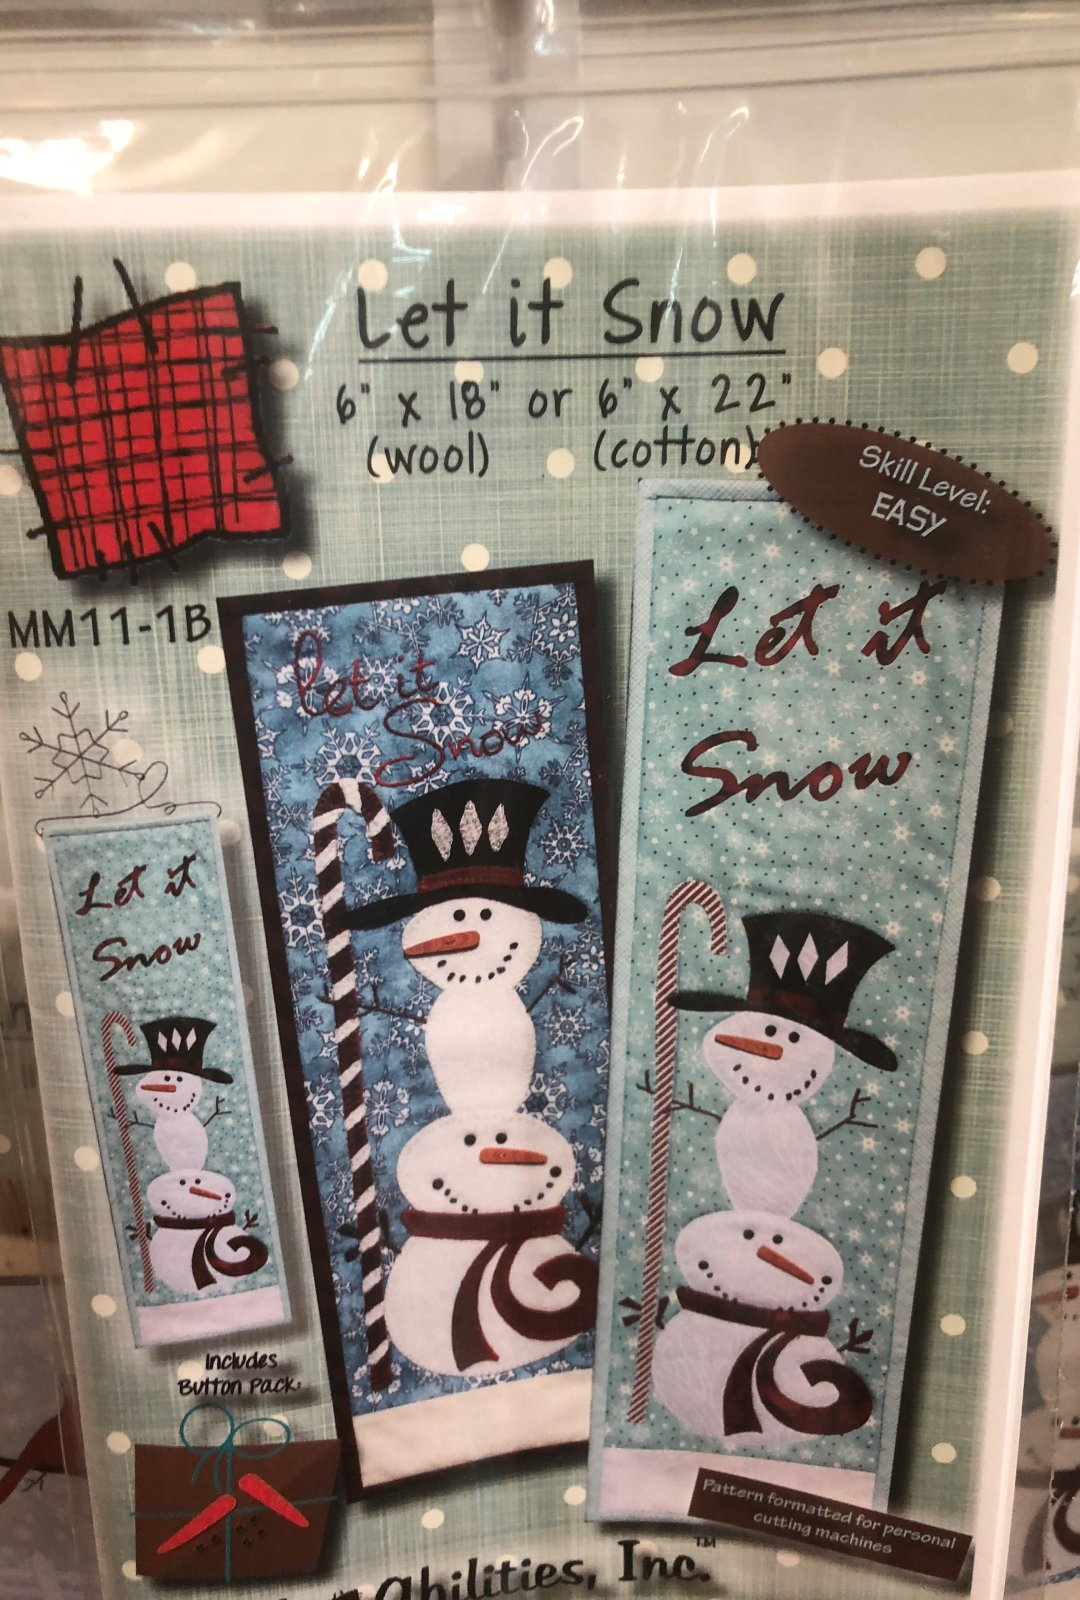 Let it Snow with buttons